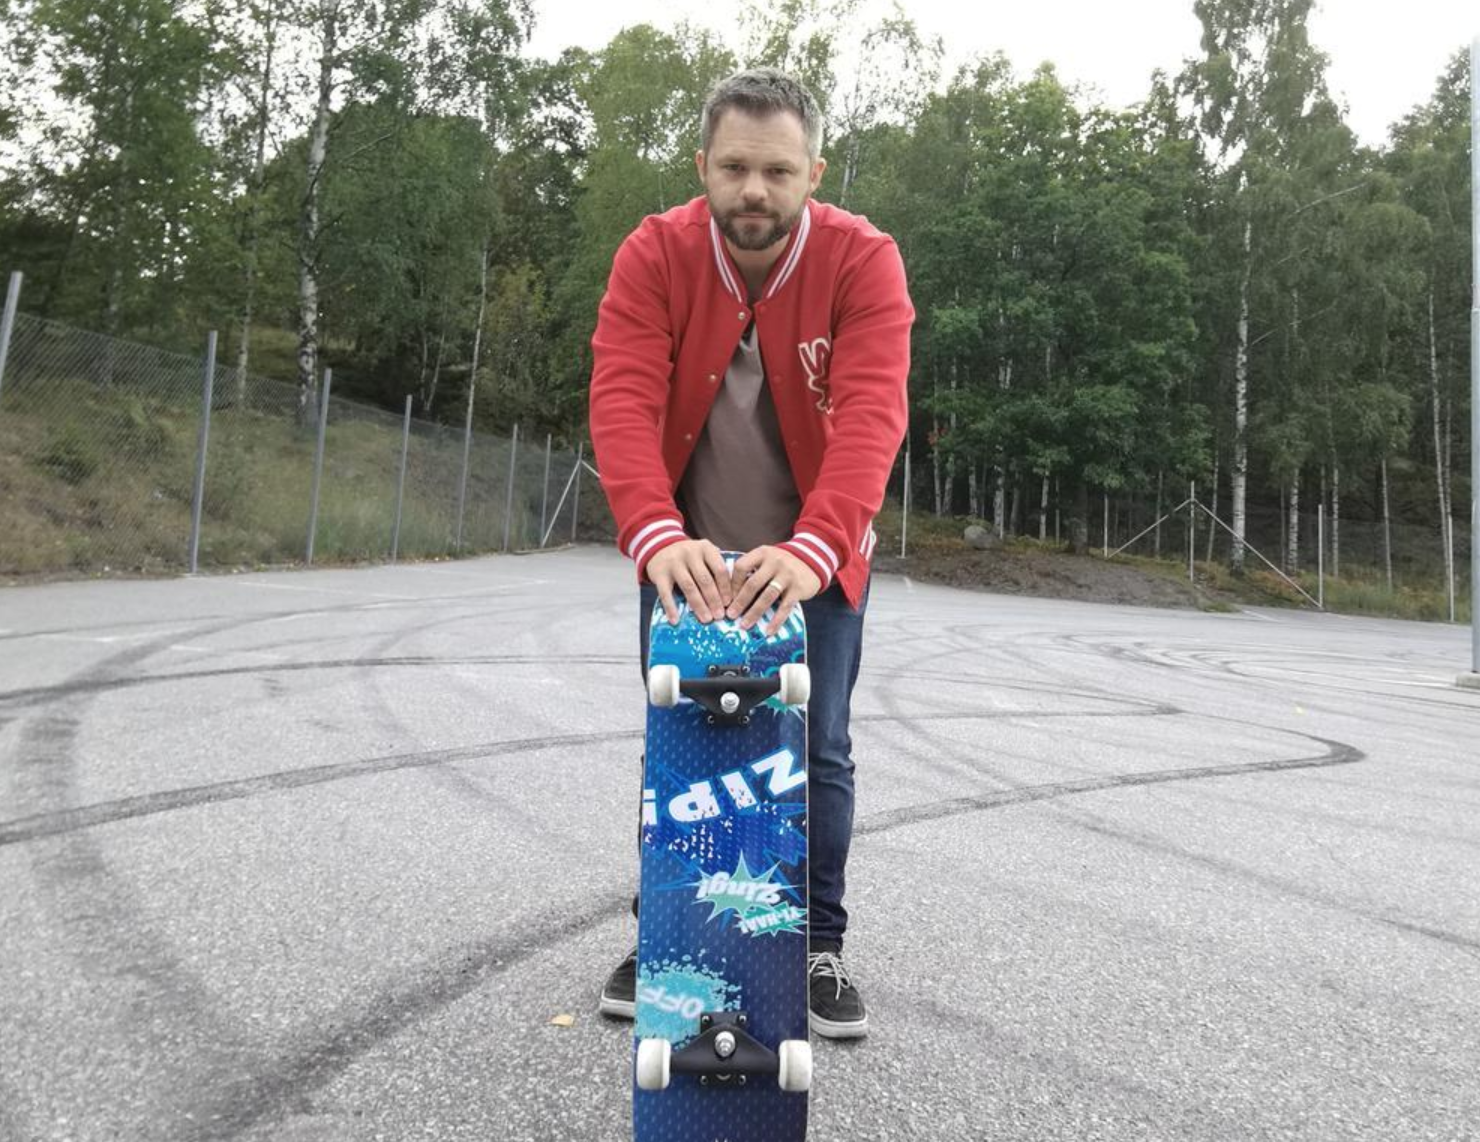 Capture d'écran 2017-10-03 à 14.34.48.png Download free STL file Skateboard Trucks • 3D printing template, DanielNoree